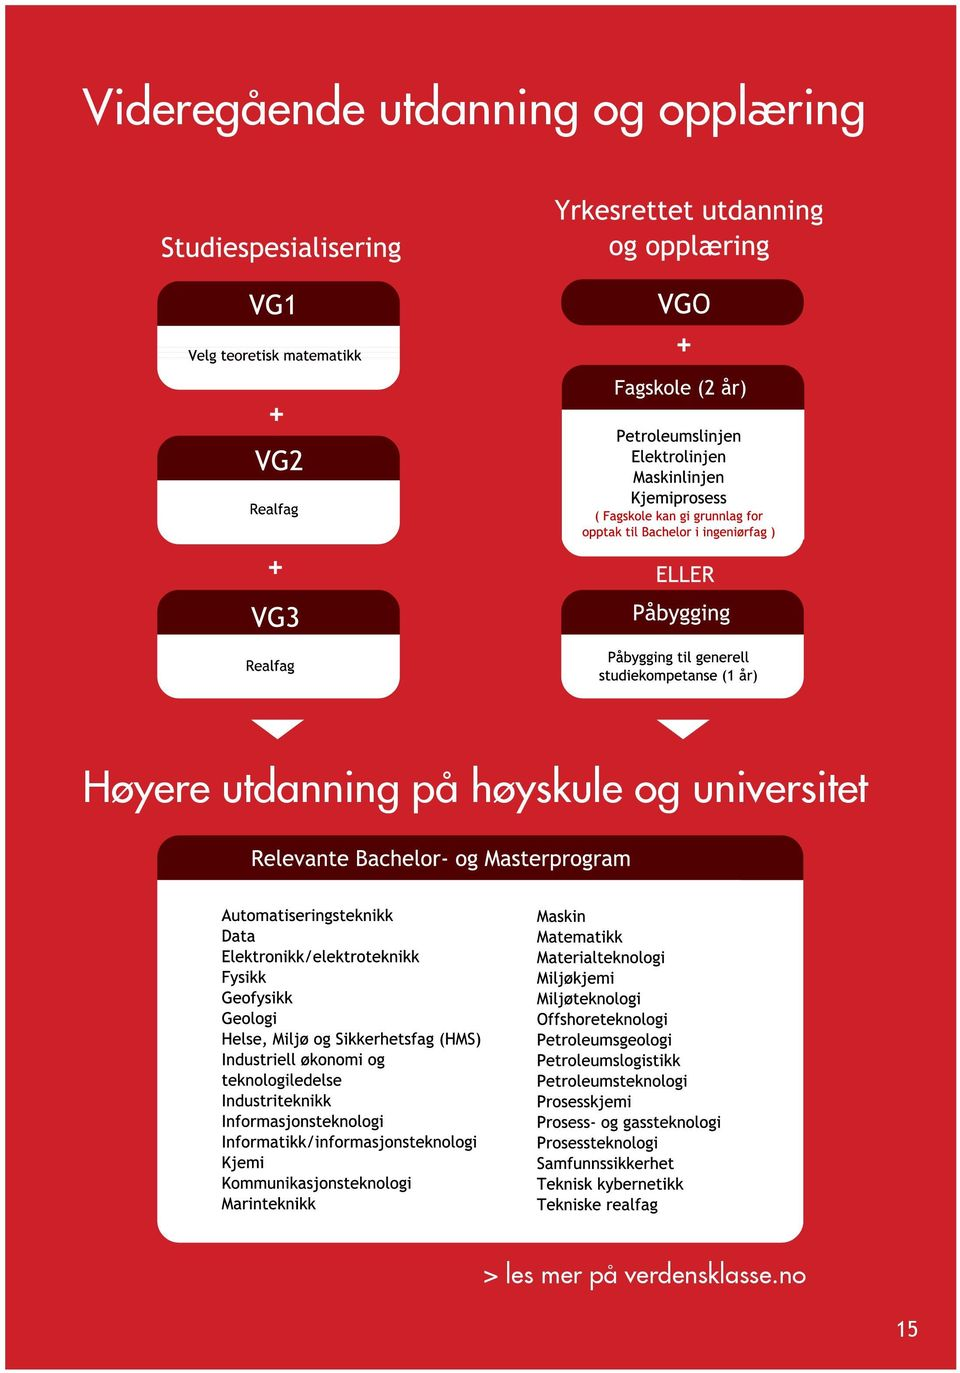 på høyskule og universitet